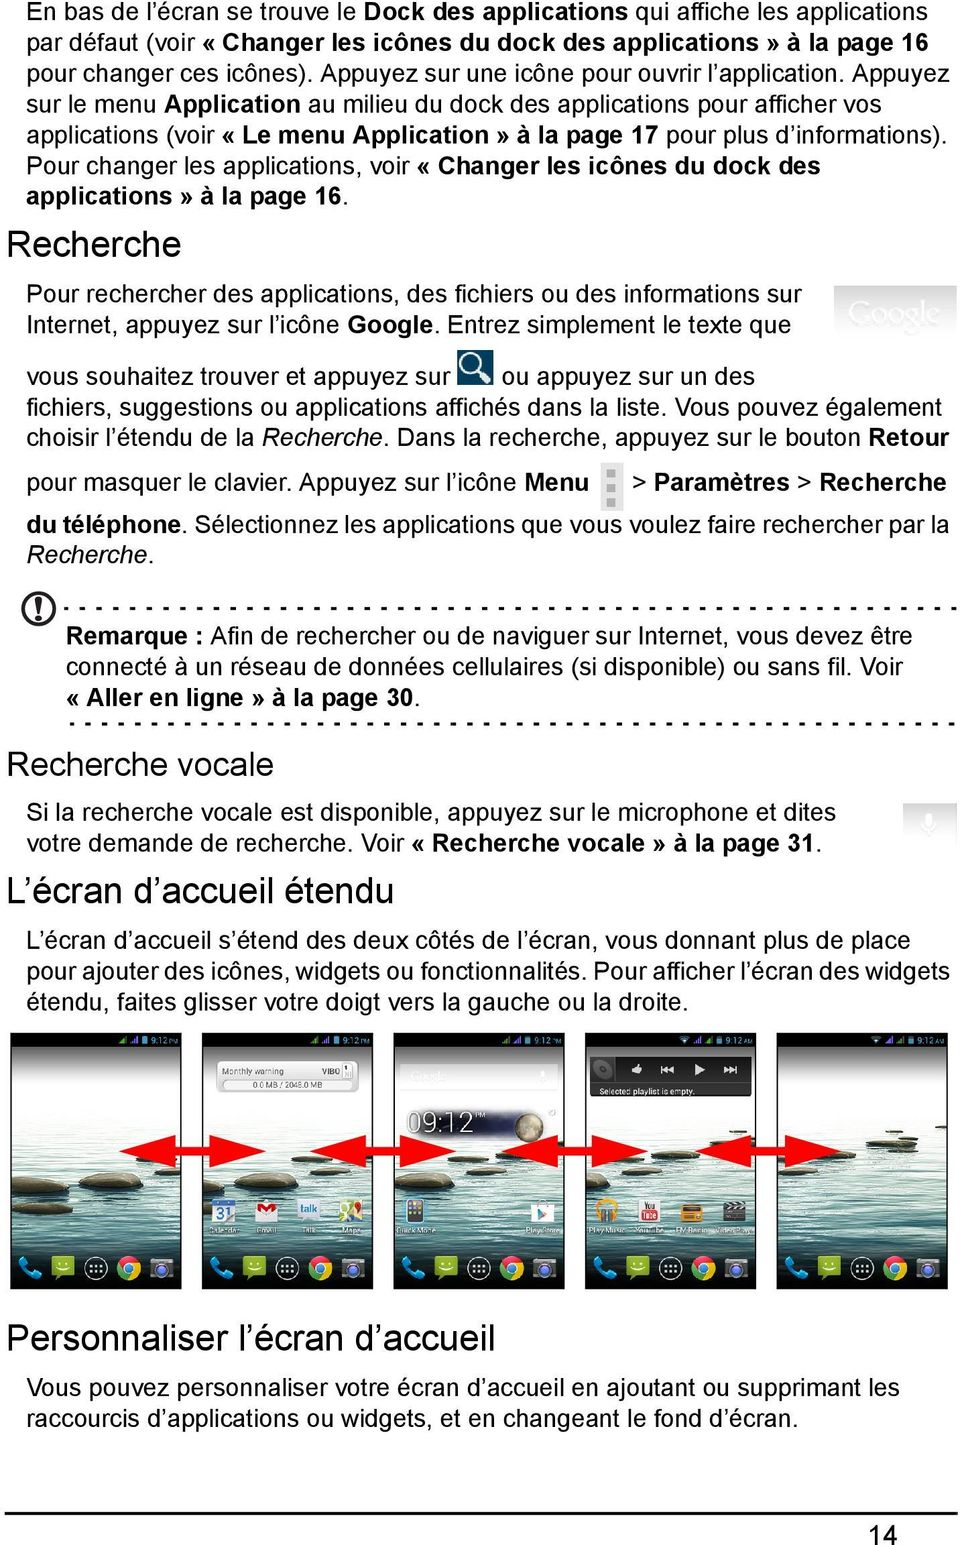 Appuyez sur le menu Application au milieu du dock des applications pour afficher vos applications (voir «Le menu Application» à la page 17 pour plus d informations).